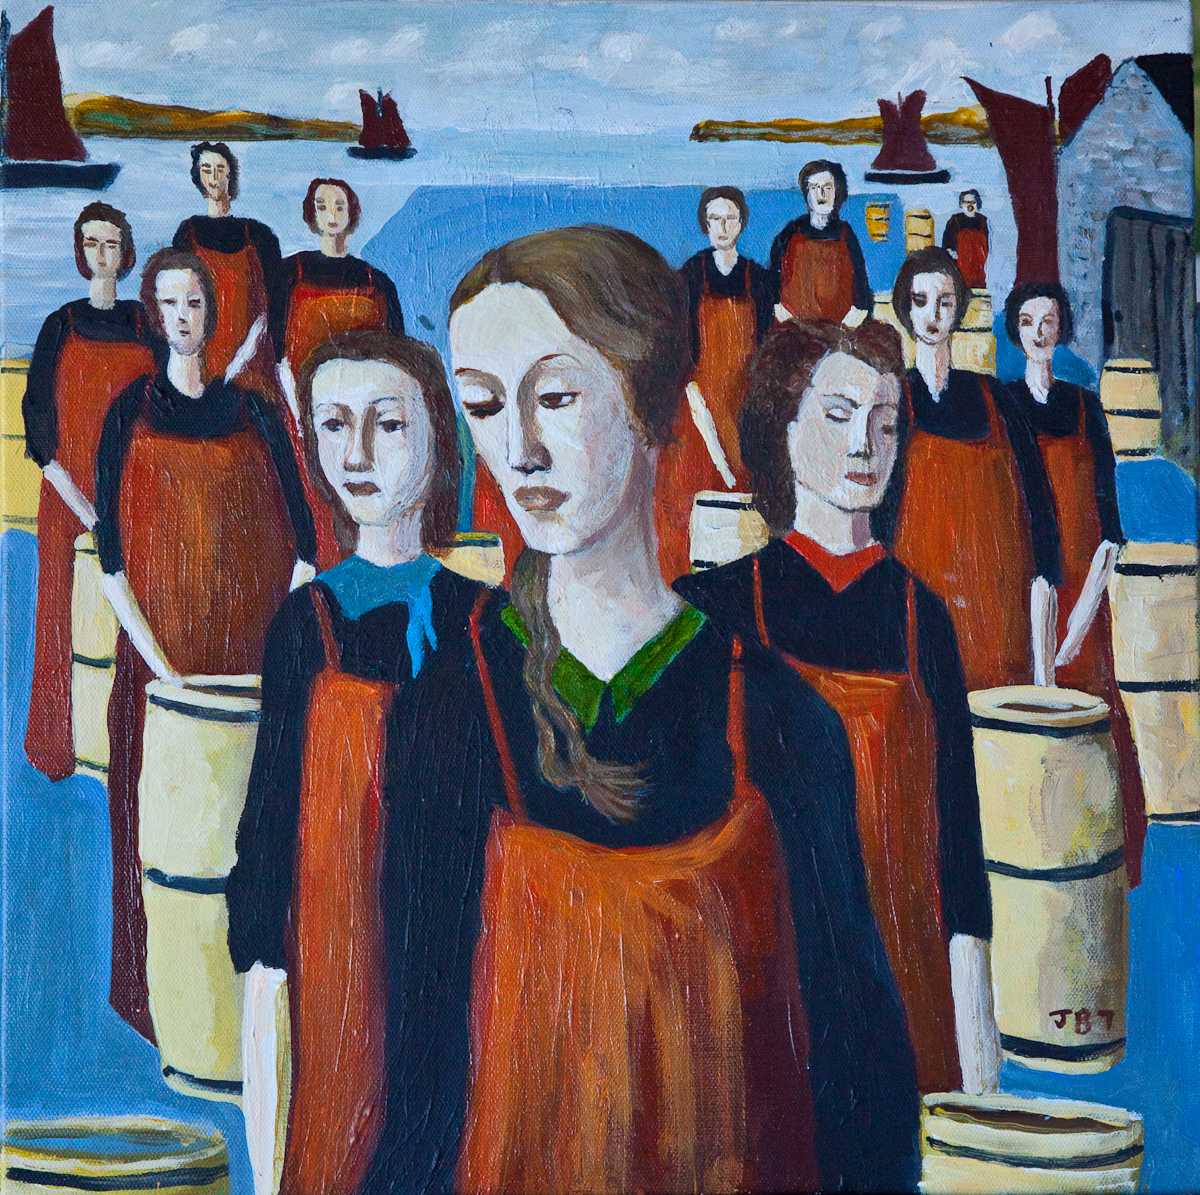 FISH_PACKERS_2.jpg - Acrylic on Board, 400 x 400, 2009, £250.00